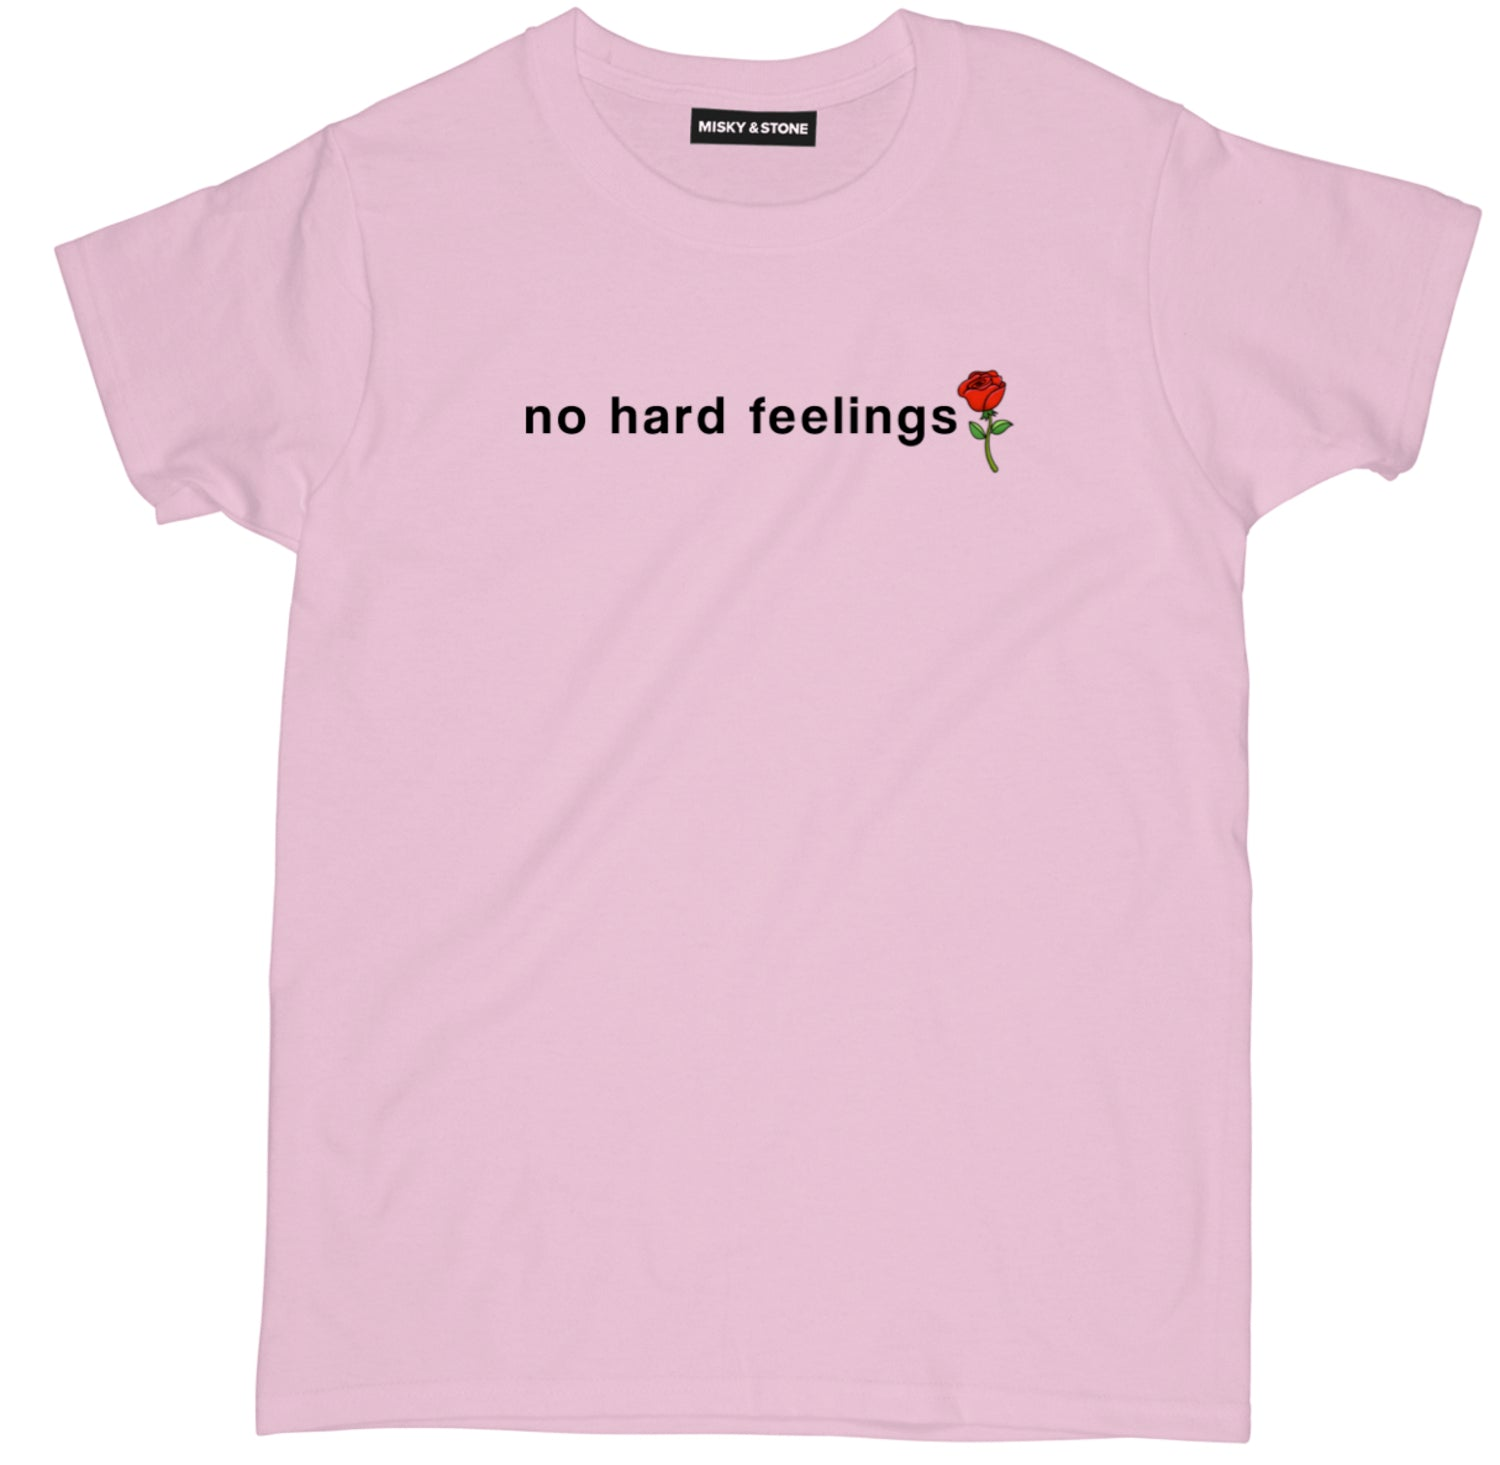 No Hard Feelings Funny Sassy Shirt